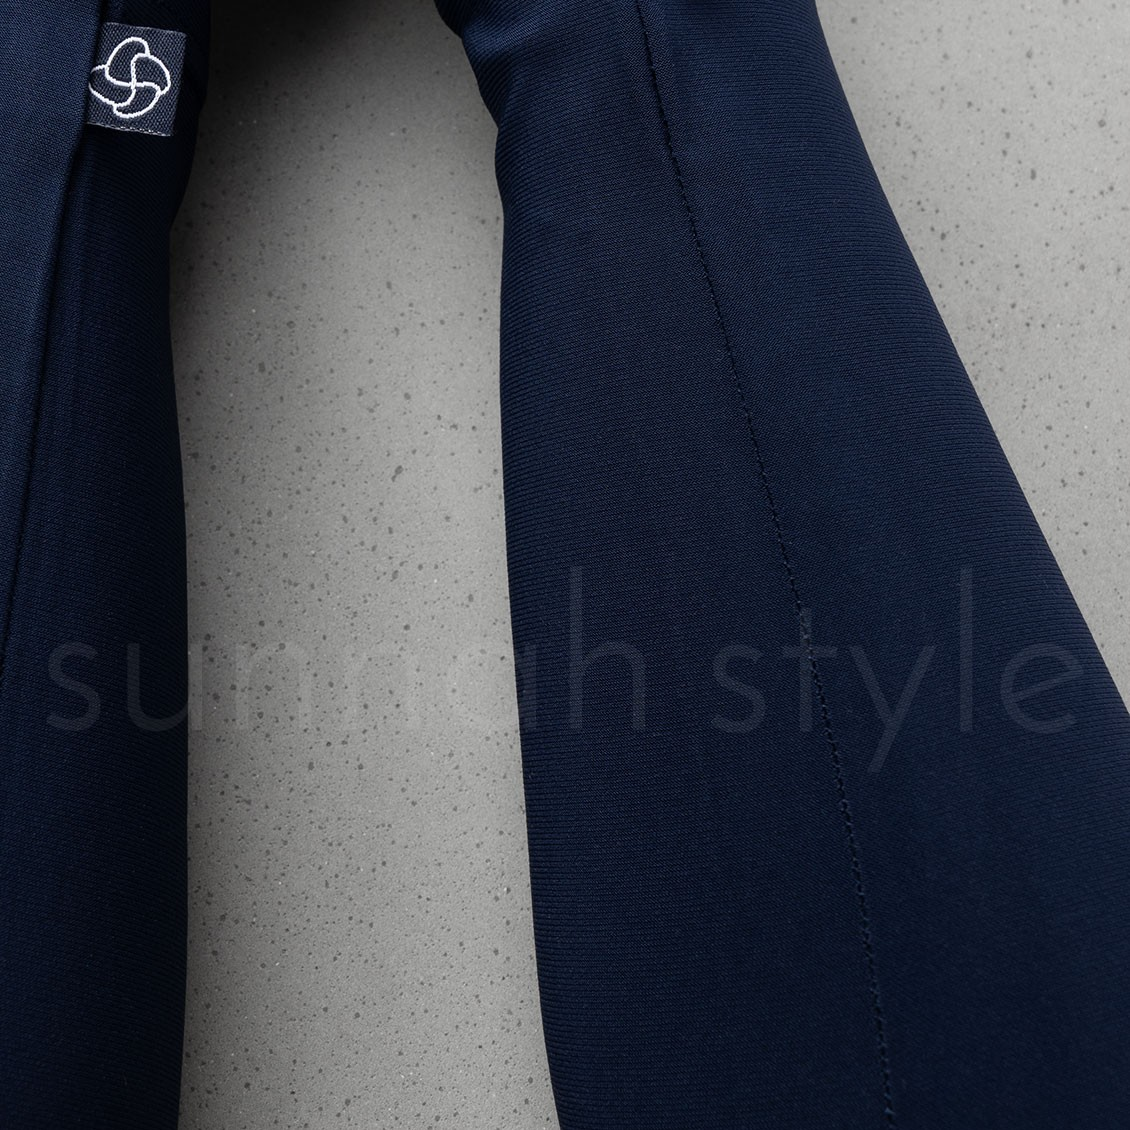 Jersey Arm Covers (Navy Blue)